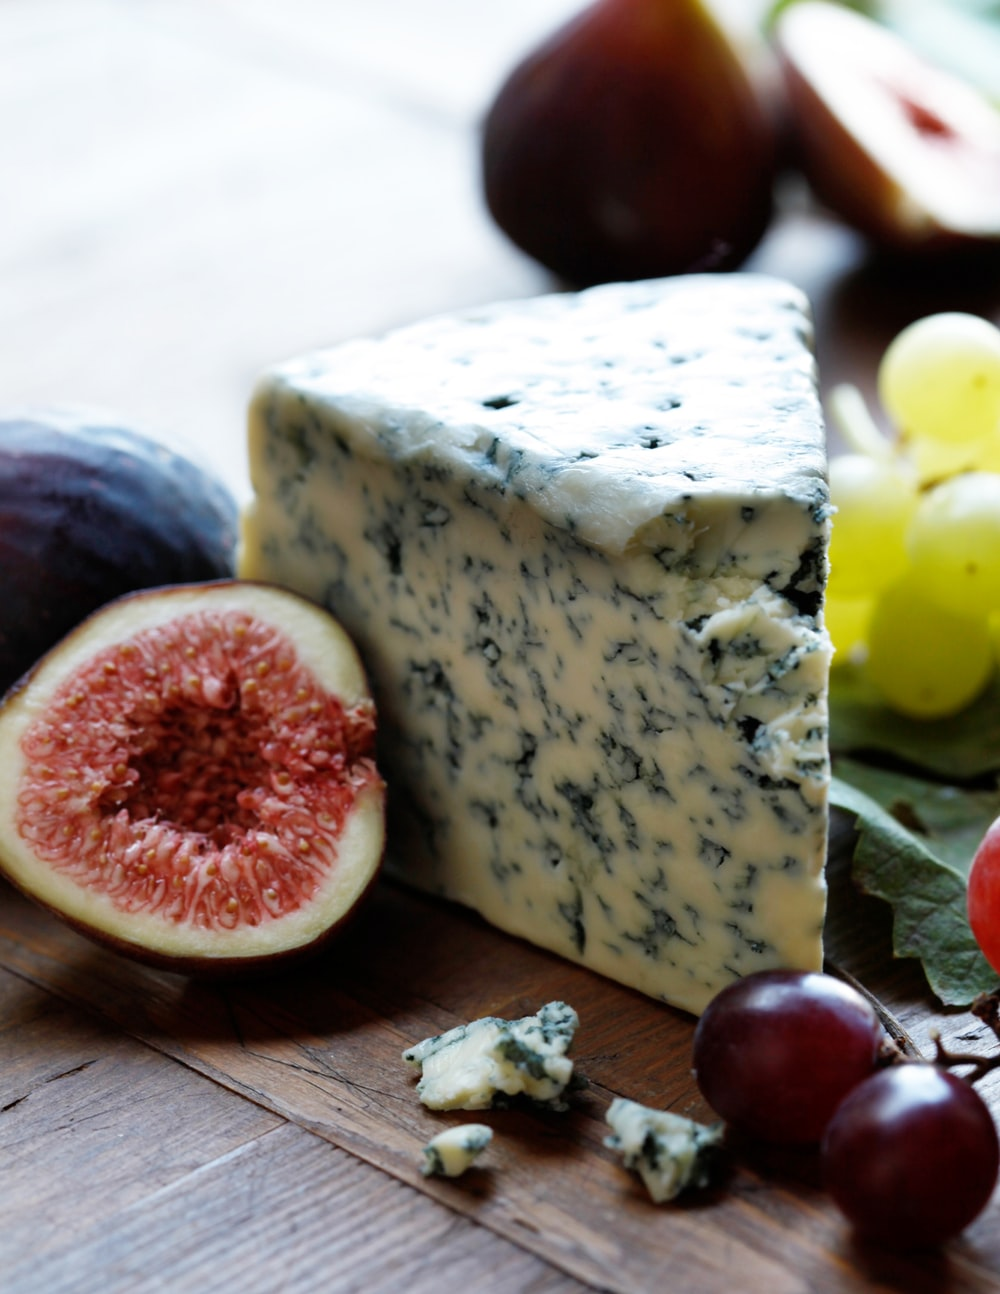 fruits and cheese on wooden surface